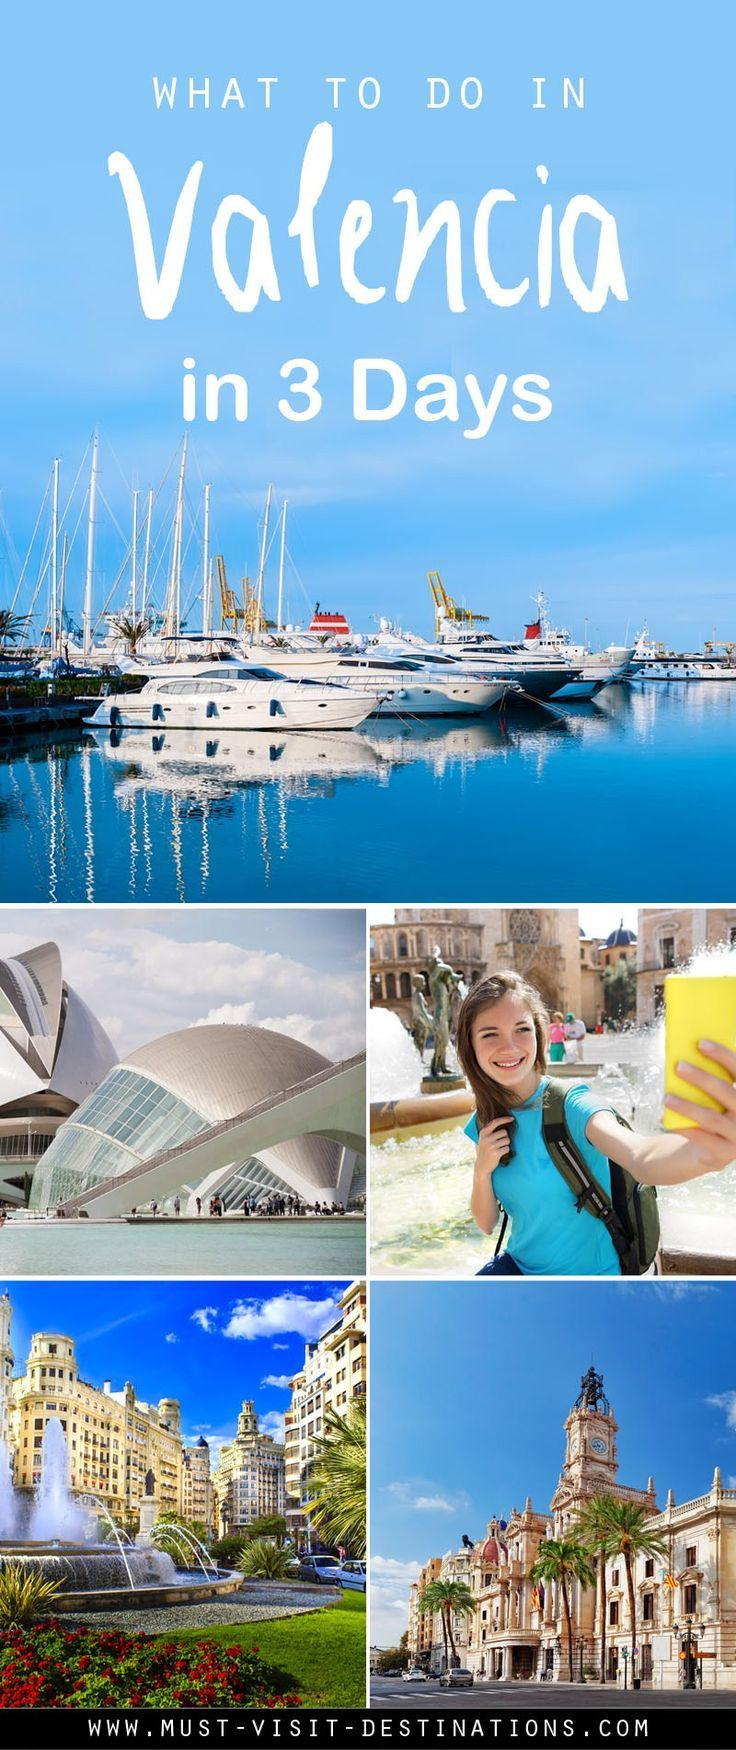 Valencia Is One Of The Most Important And Most Exciting Spanish Cities Putting A Big Accent On Traditions And Festivities Valencia Spanje Spanje Reizen Reizen